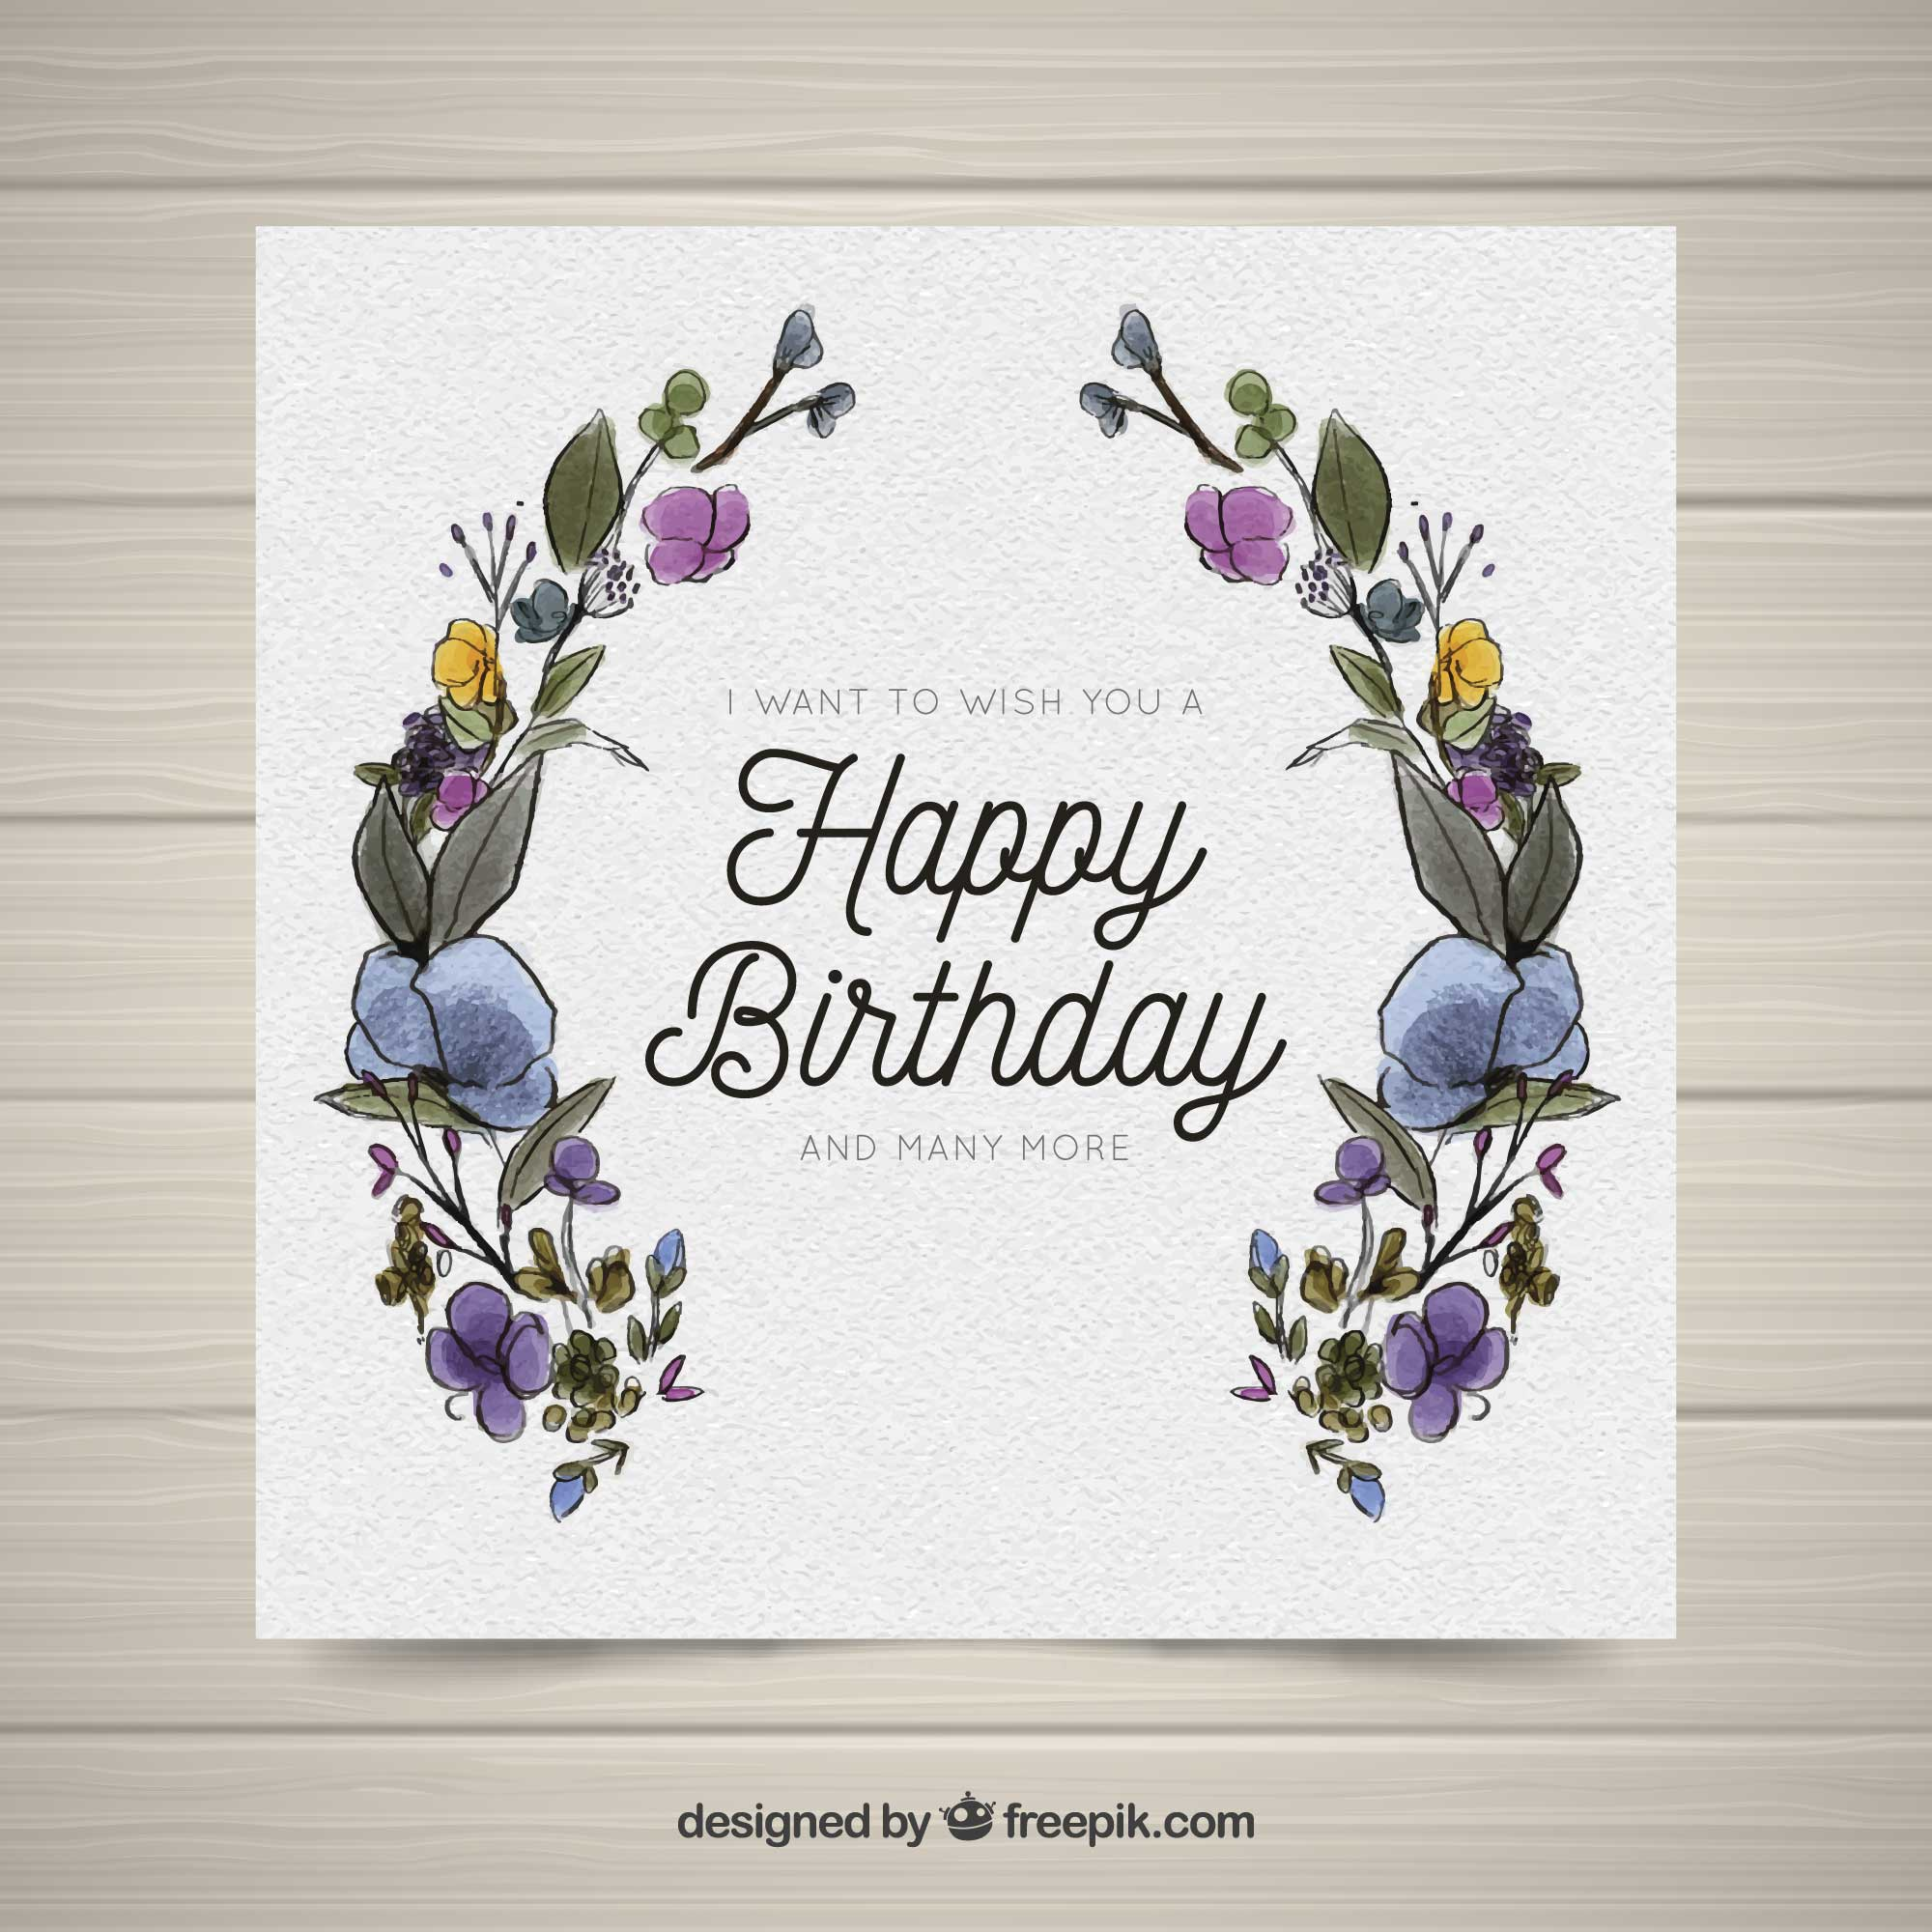 Happy birthday card with watercolor flowers